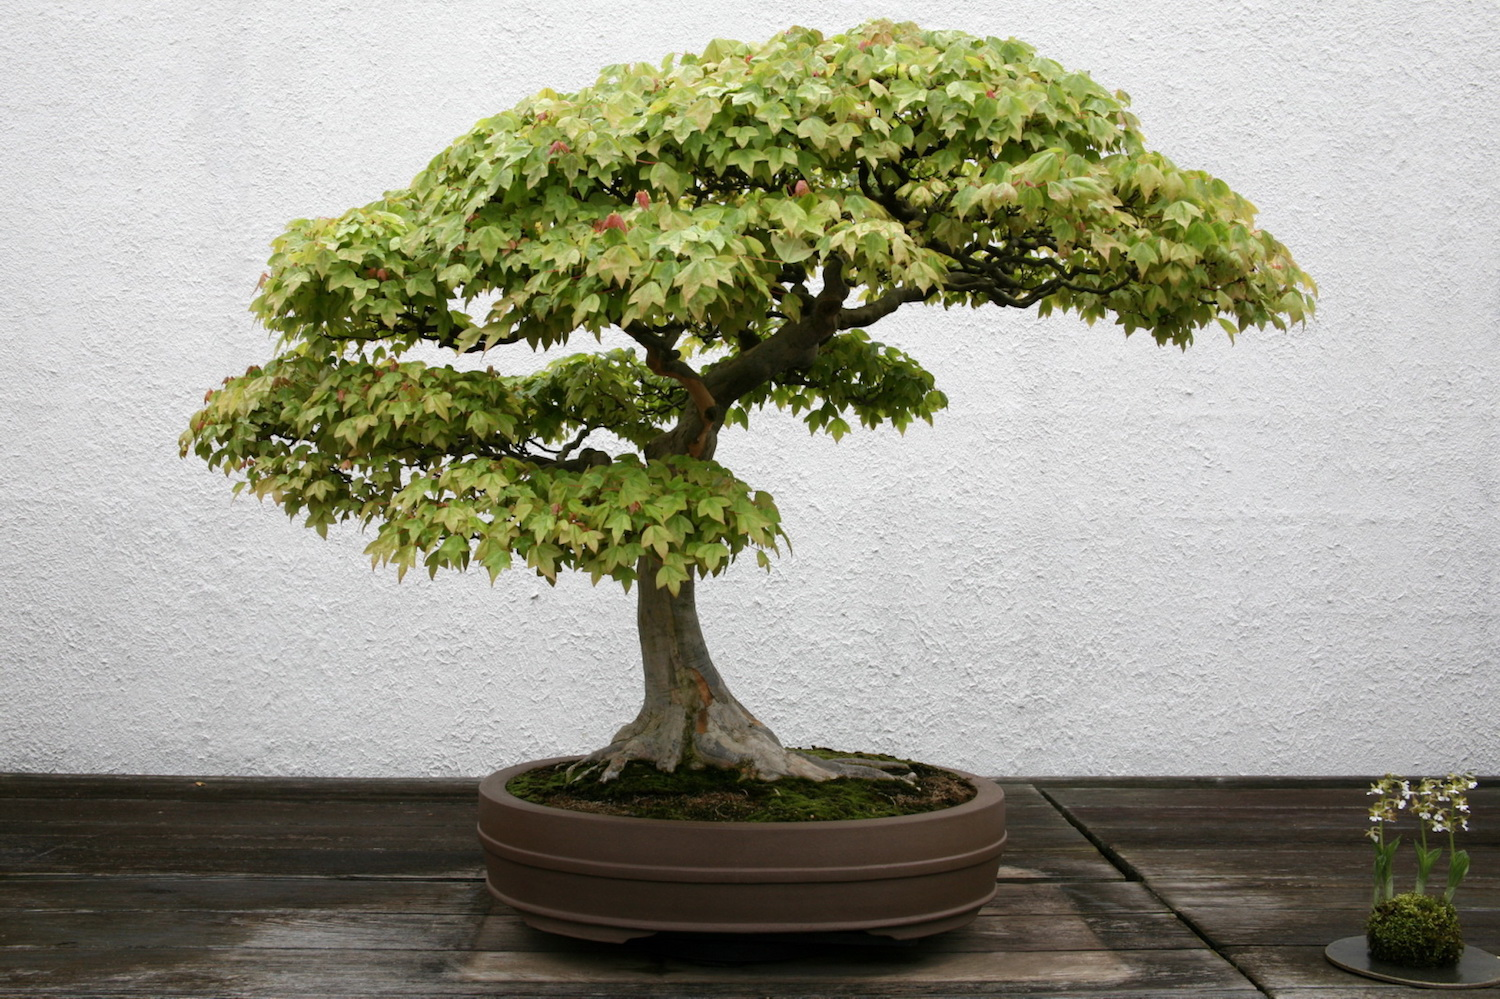 Bonsai D Interieur Especes Photos De Bonsai Galerie D Images De Bonsai Maitre Bonsai